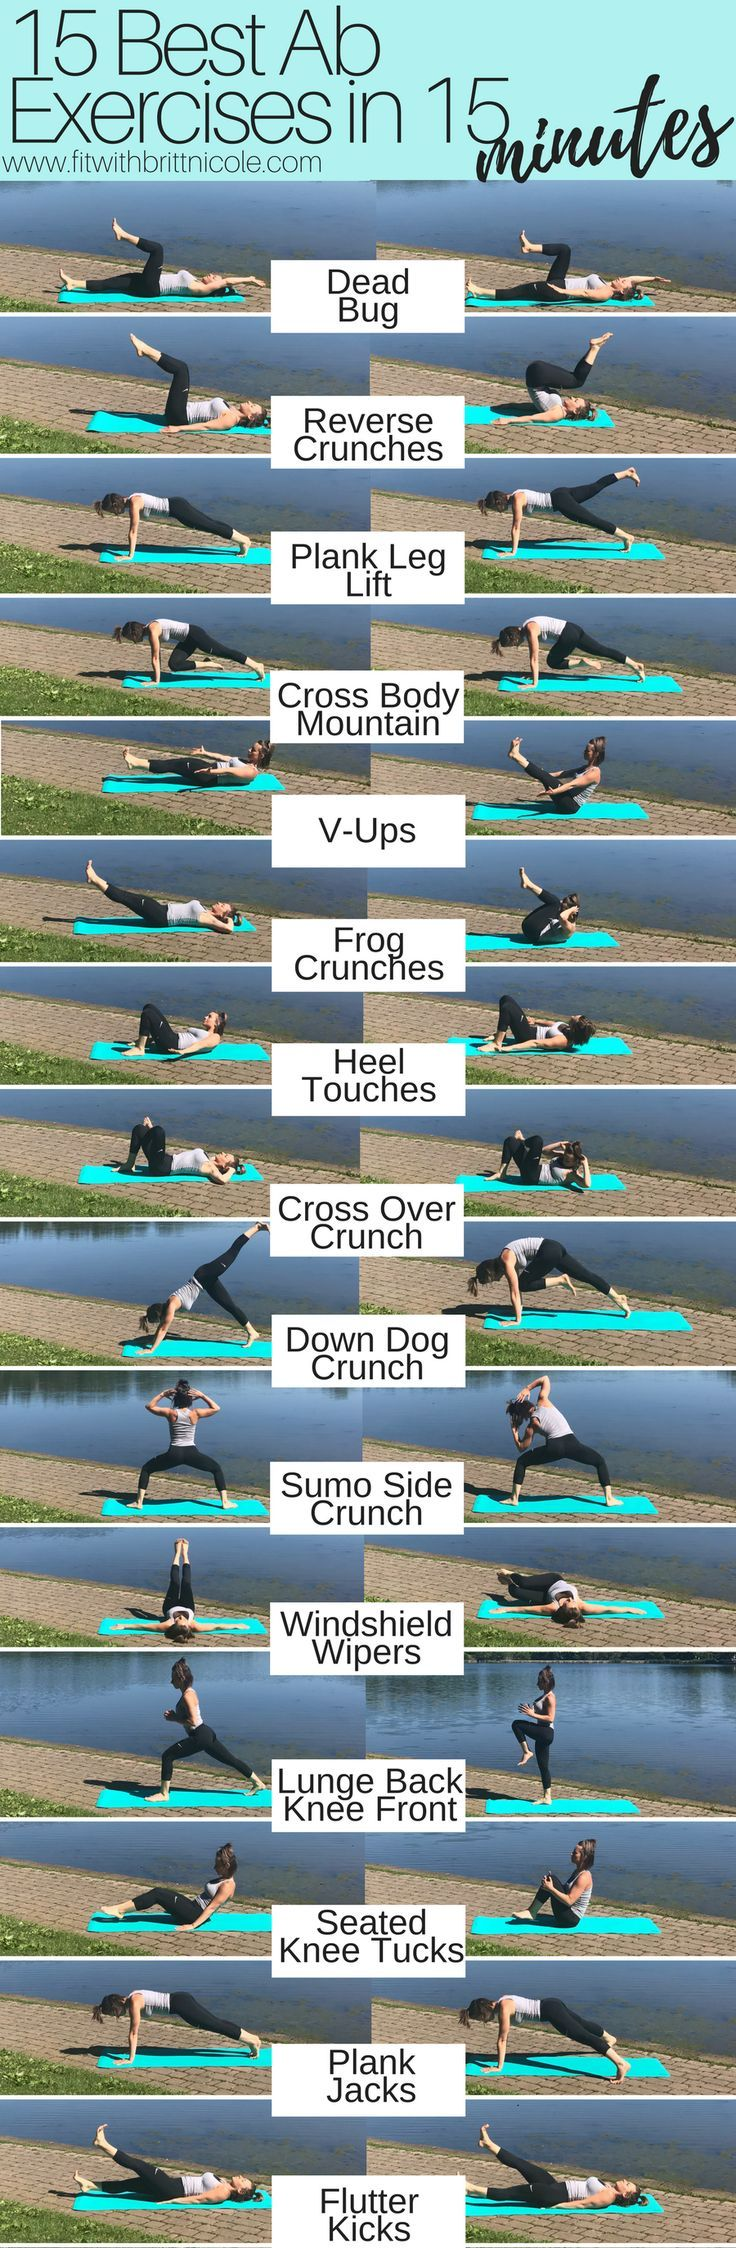 Don't have much time to workout? No problem! here are the 15 best ab exercises in just 15 minutes! This 15 minute ab workout is going to sculpt and tone that tummy and you don't even have to leave the house! 15 Minute Ab Workout | 15 Best Ab Exercises | Core Workout | Home Workout for Busy Women | Fitness Coaching | Tone and Tighten #homeworkout #abworkout #abexercises #15minuteworkout #coreworkout #corestrength #weightloss